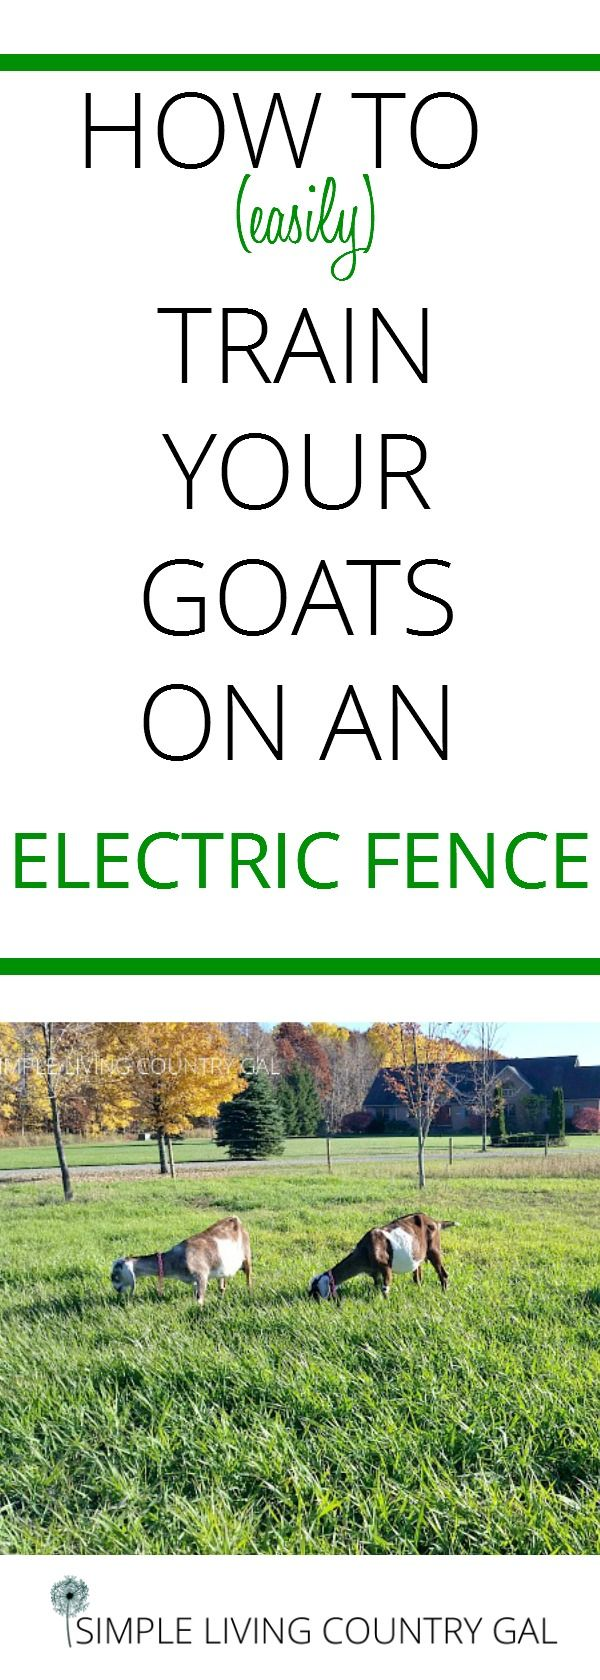 Train your goats on an electric fence simply by following these tips.